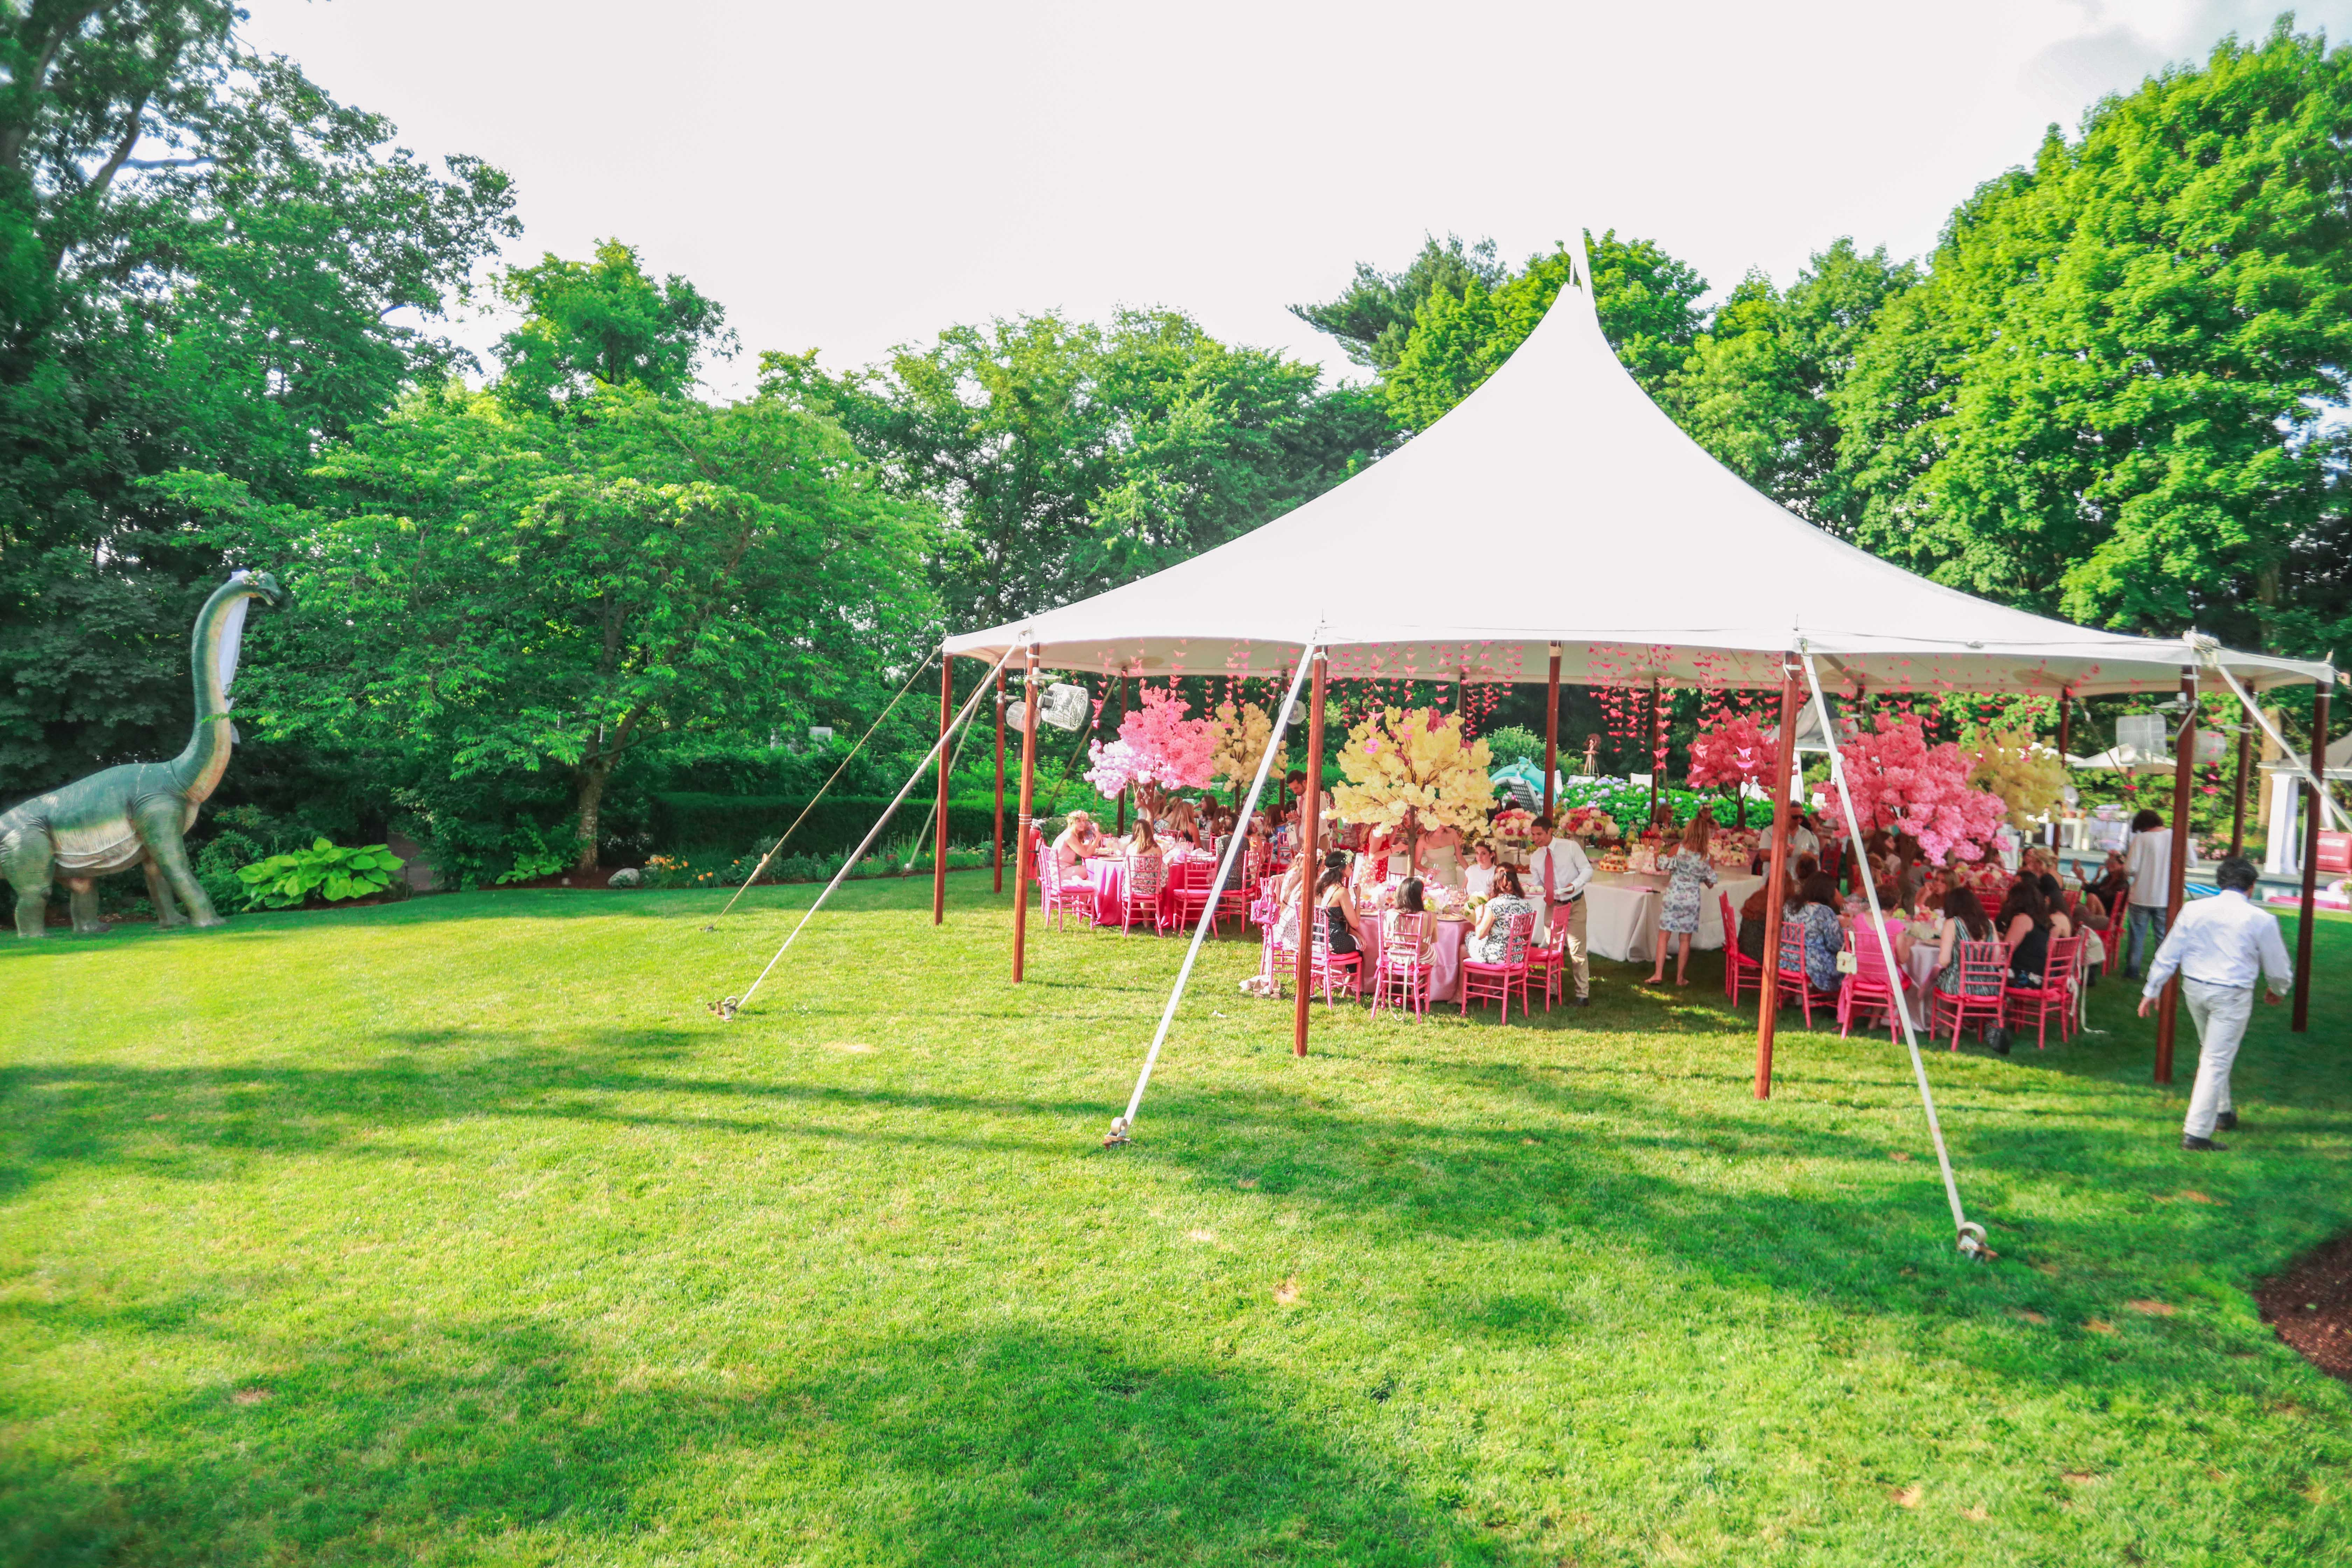 outdoor bridal shower pink decor and seatings under tent